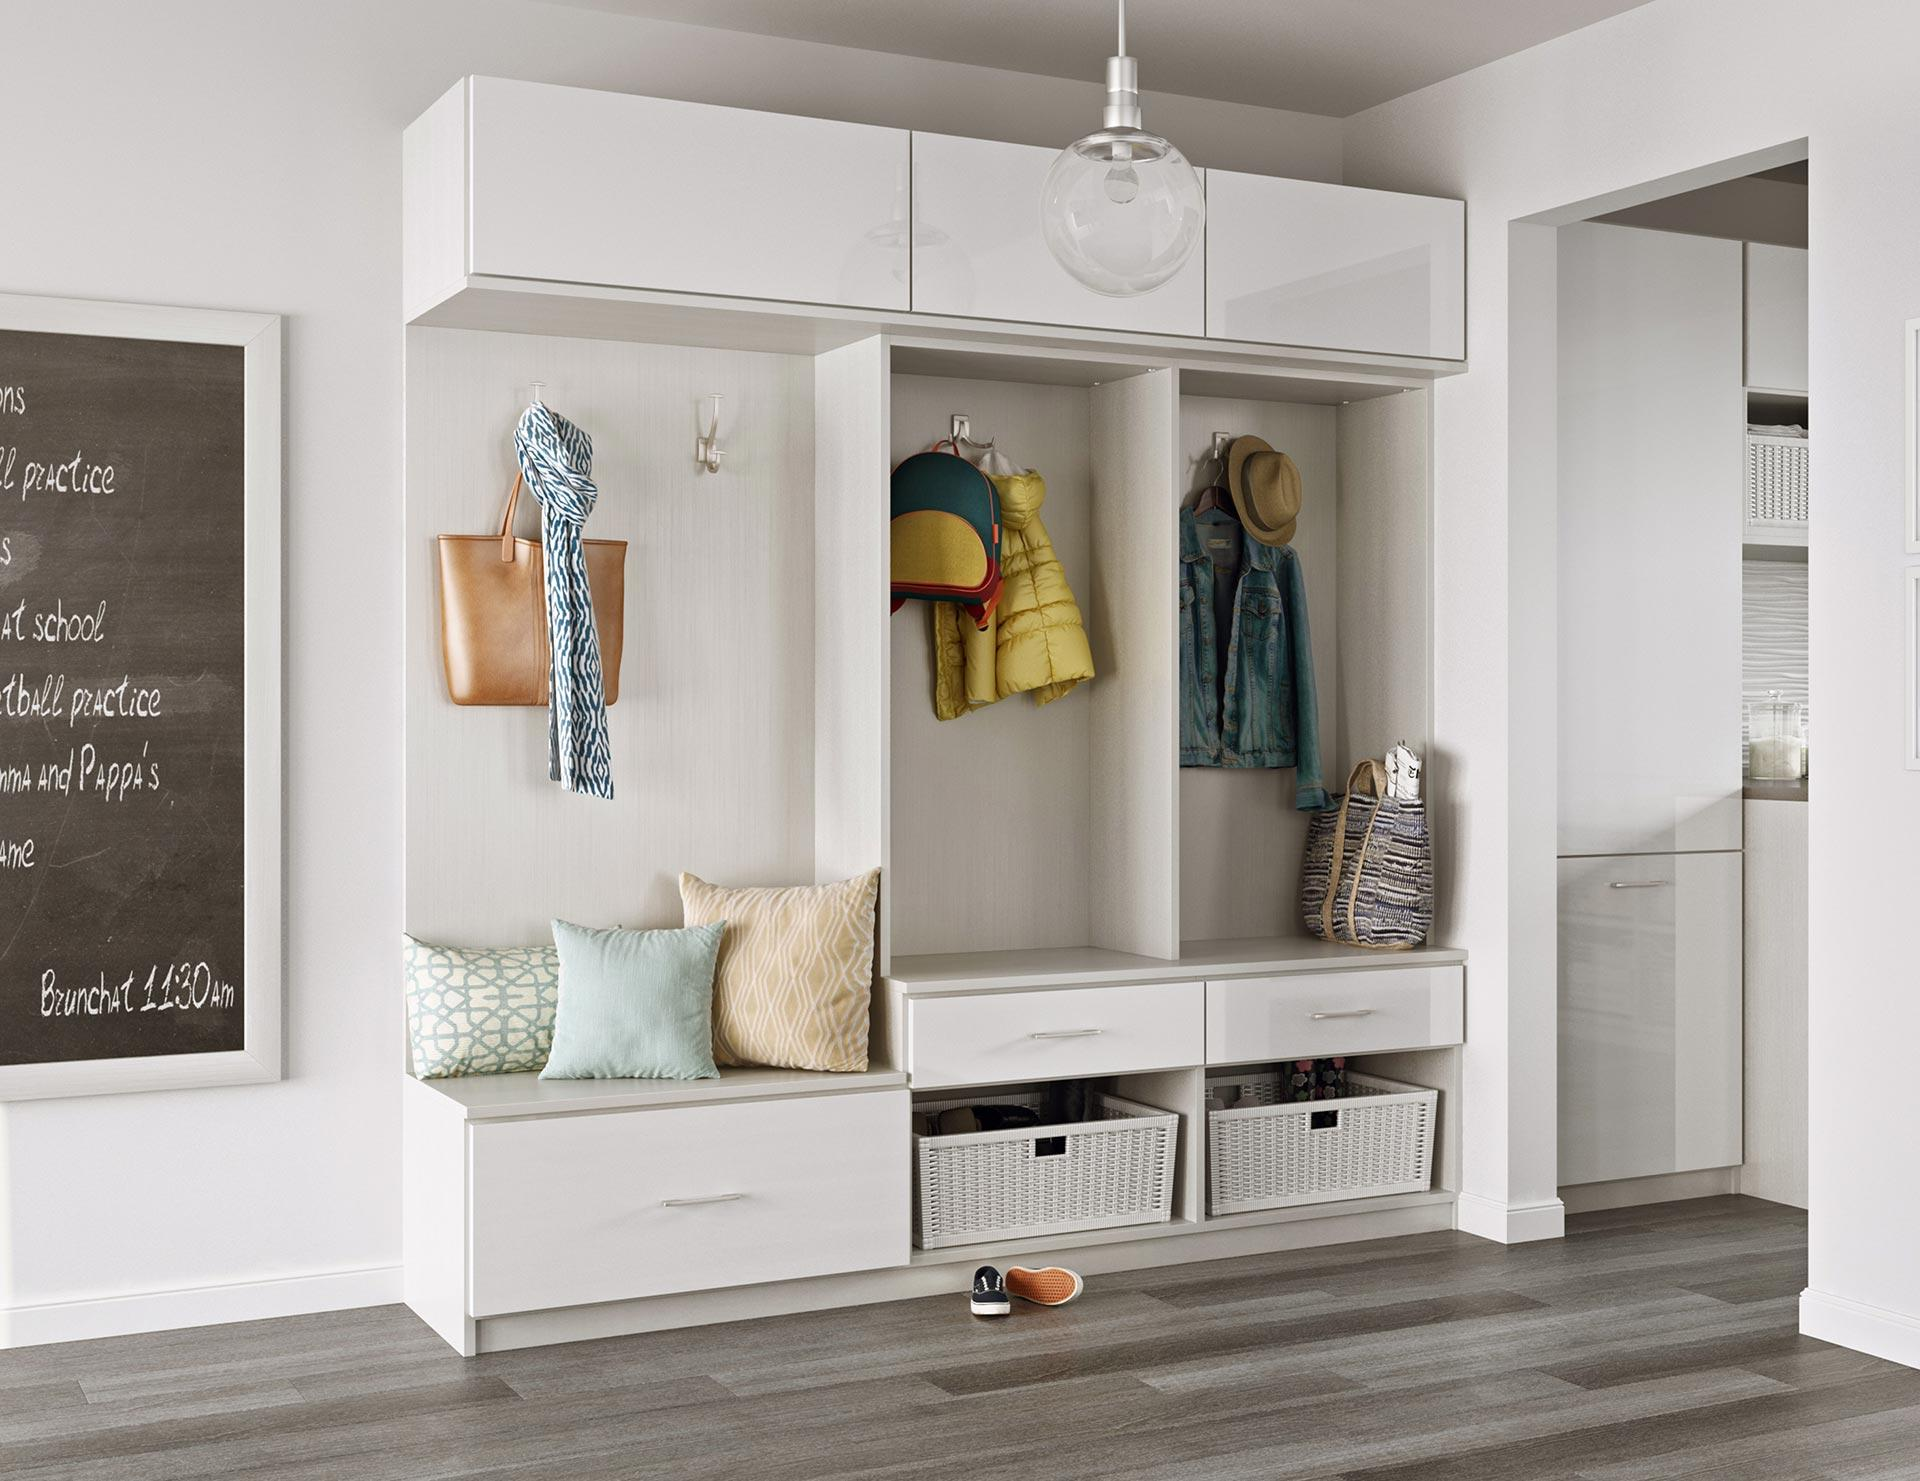 Mudroom Storage Entryway Organization